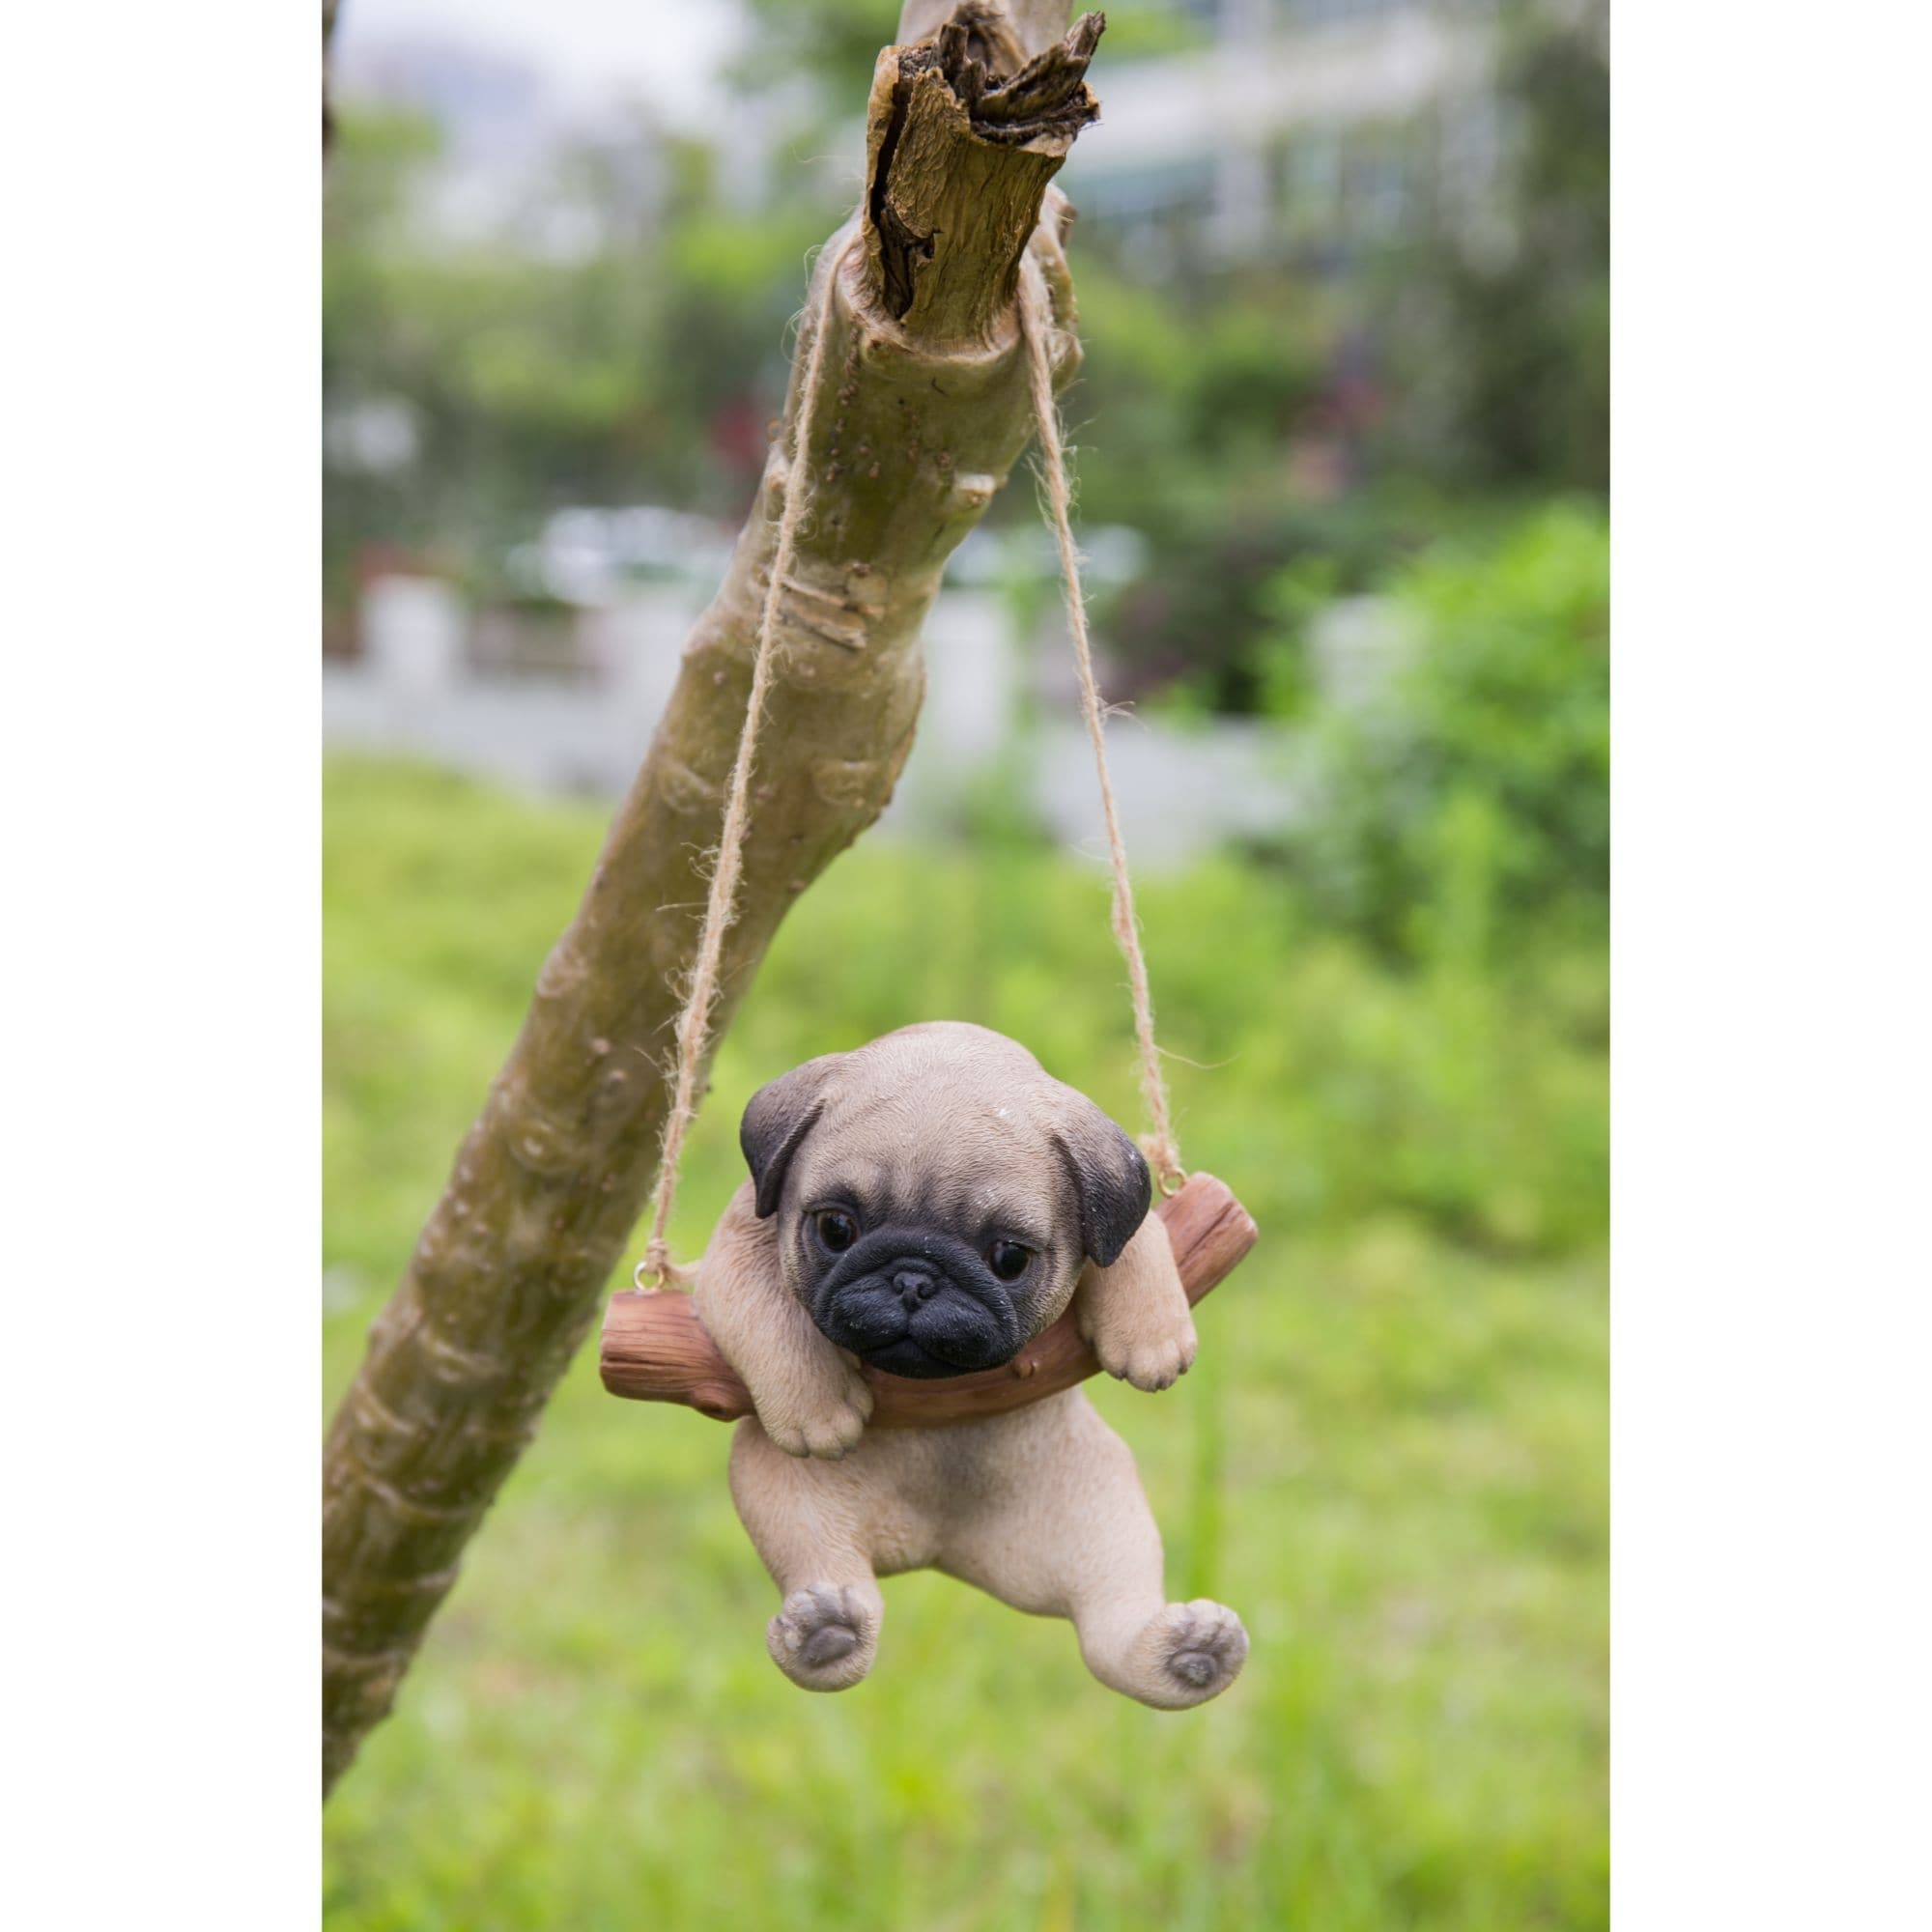 5 Brown And Black Hanging Pug Puppy Statue Overstock 30696764